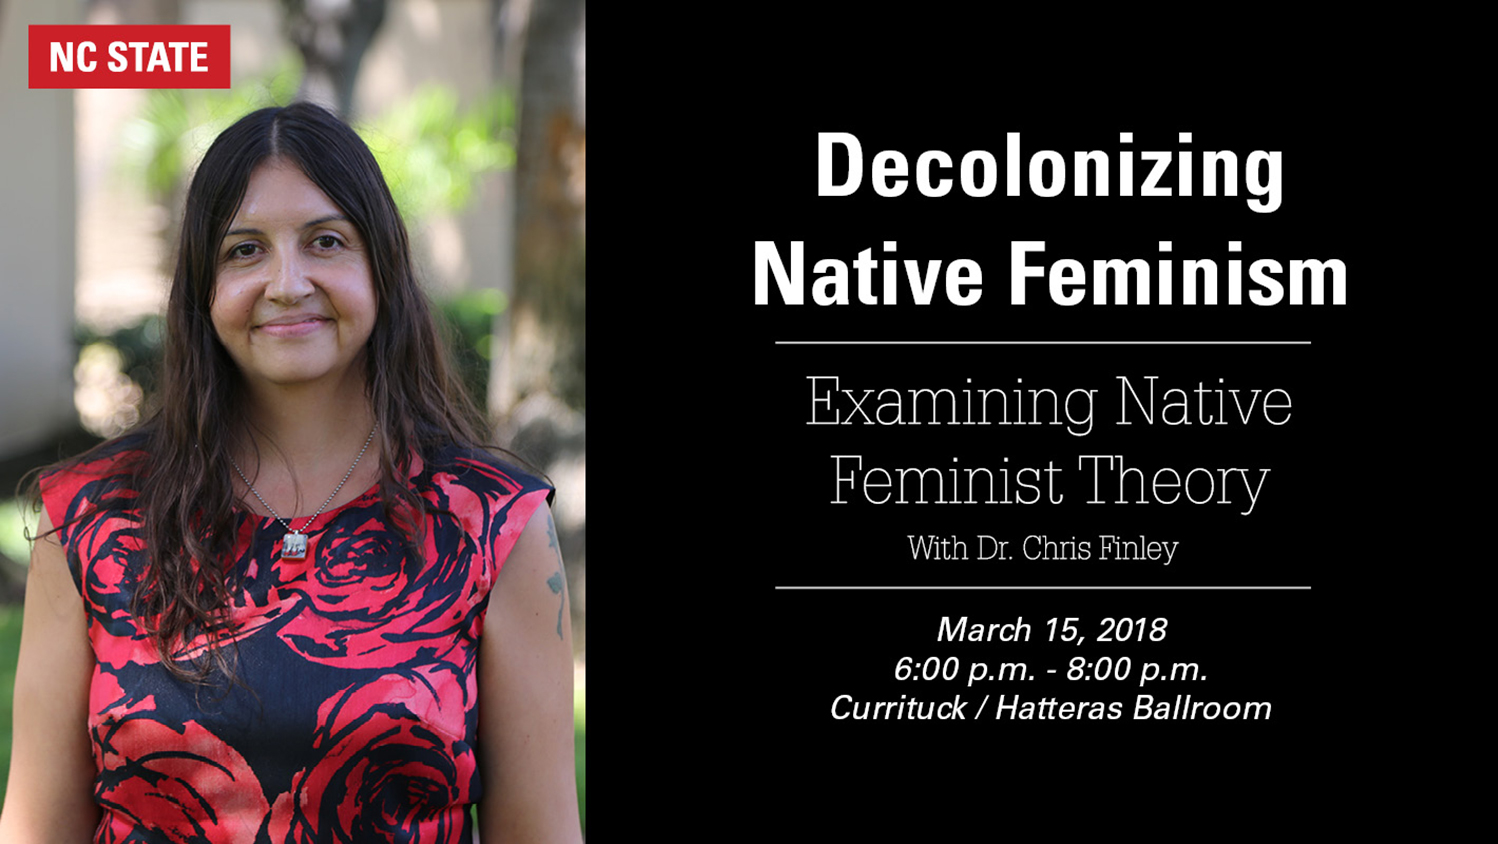 Decolonizing Native Feminism lecture